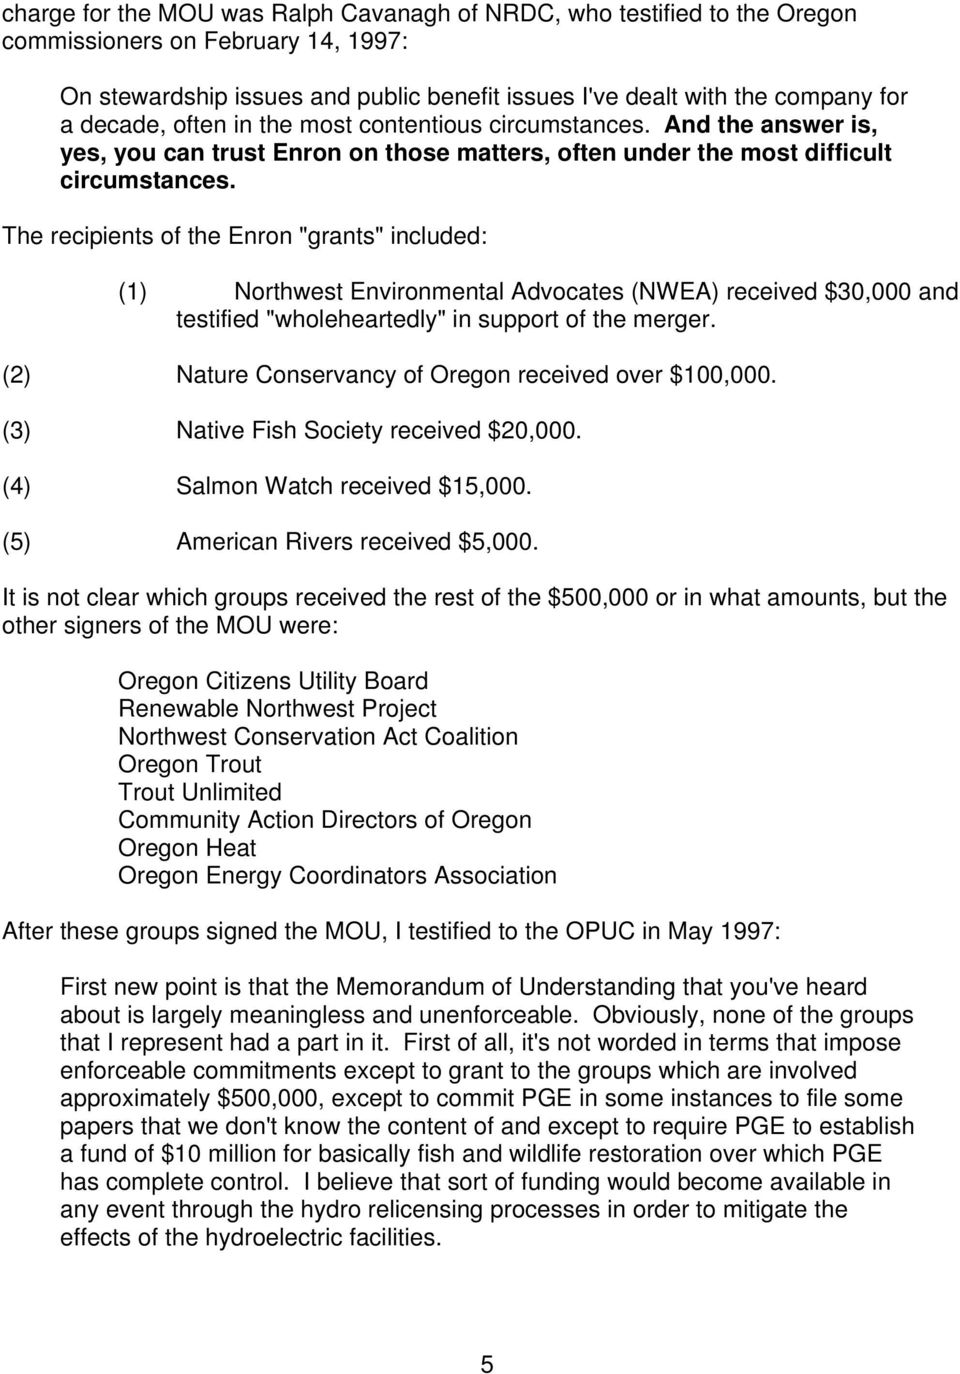 "The recipients of the Enron ""grants"" included: (1) Northwest Environmental Advocates (NWEA) received $30,000 and testified ""wholeheartedly"" in support of the merger."